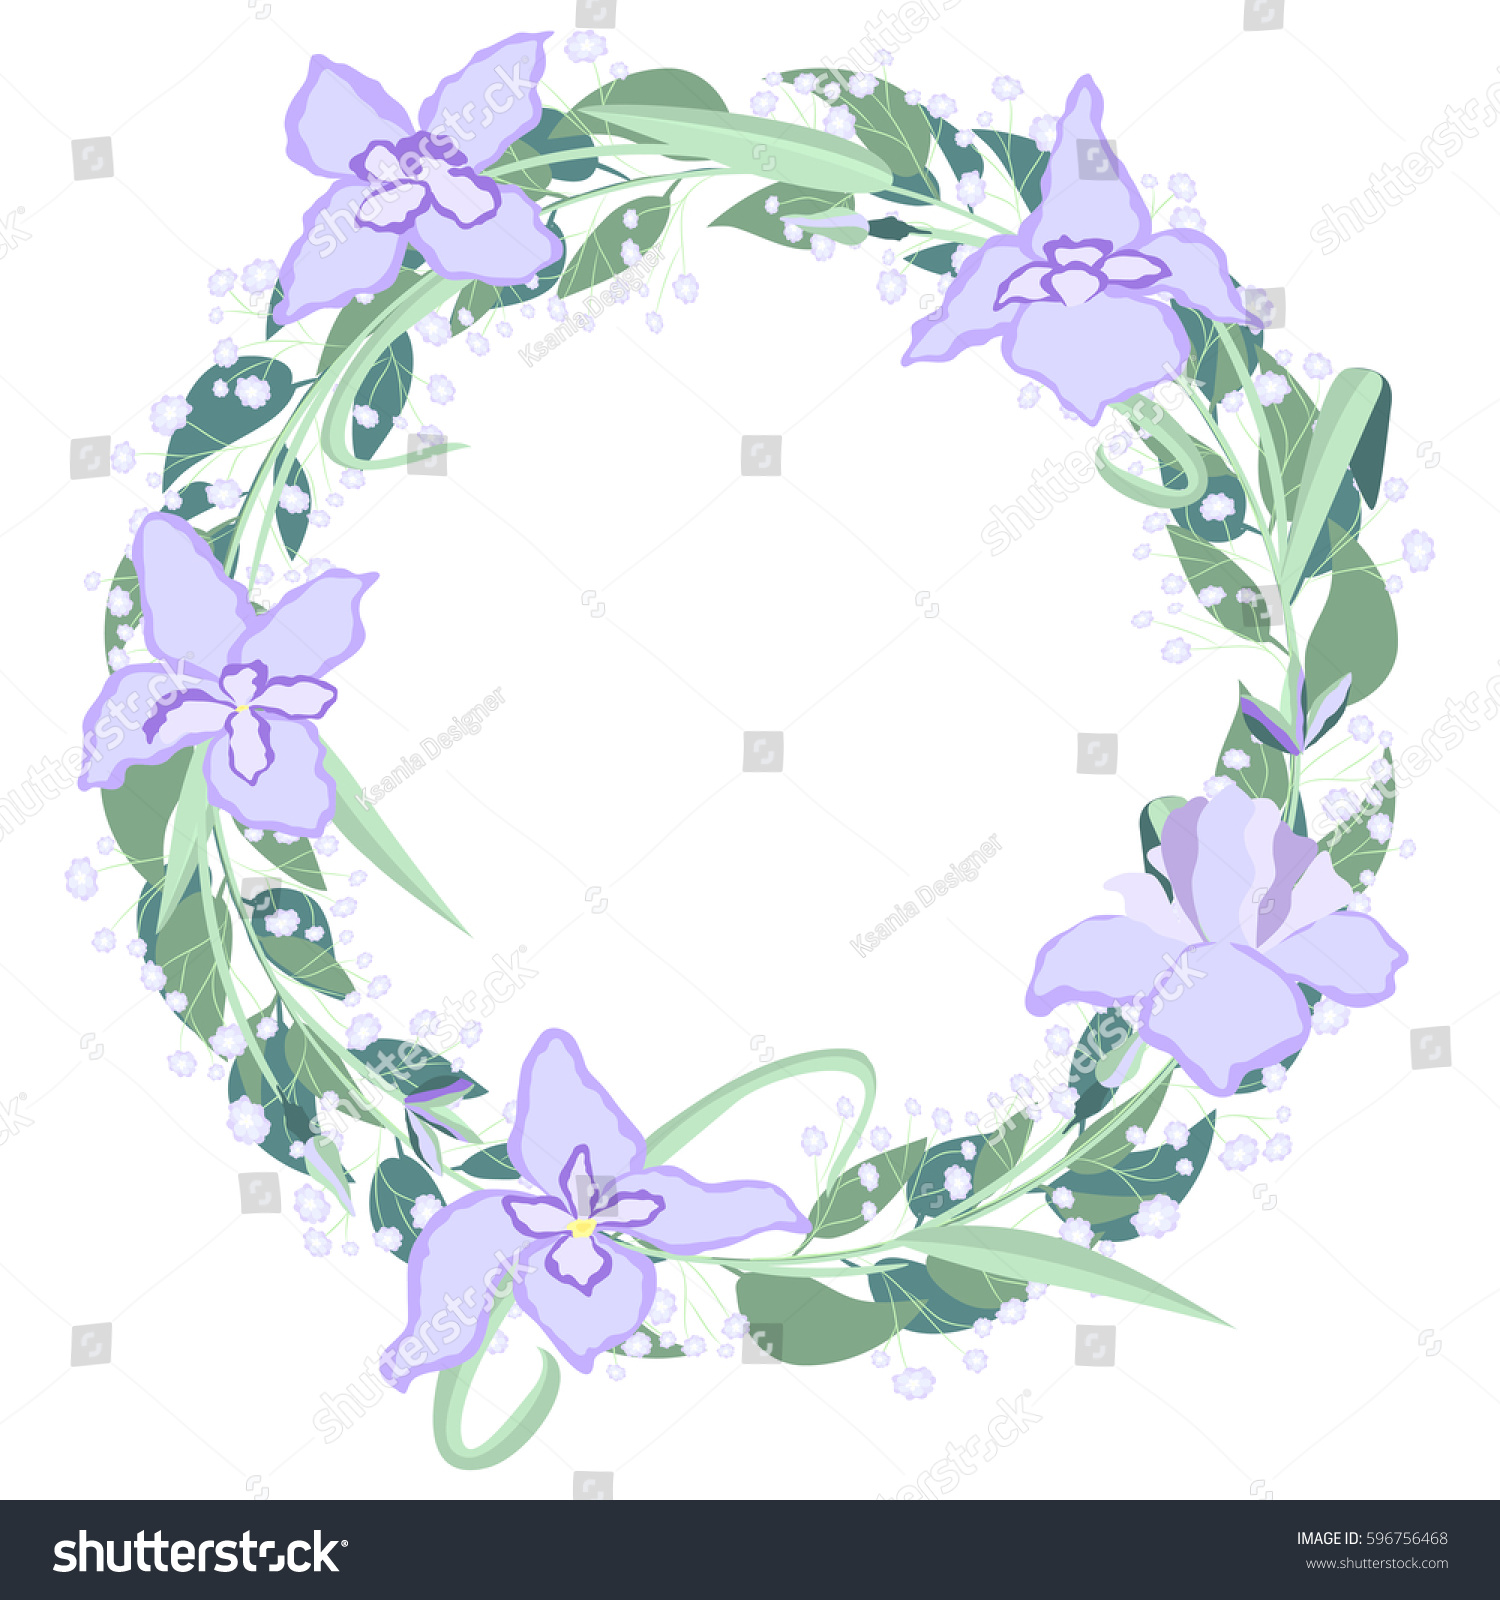 flower iris beautiful holiday wreath vector stock vector 596756468